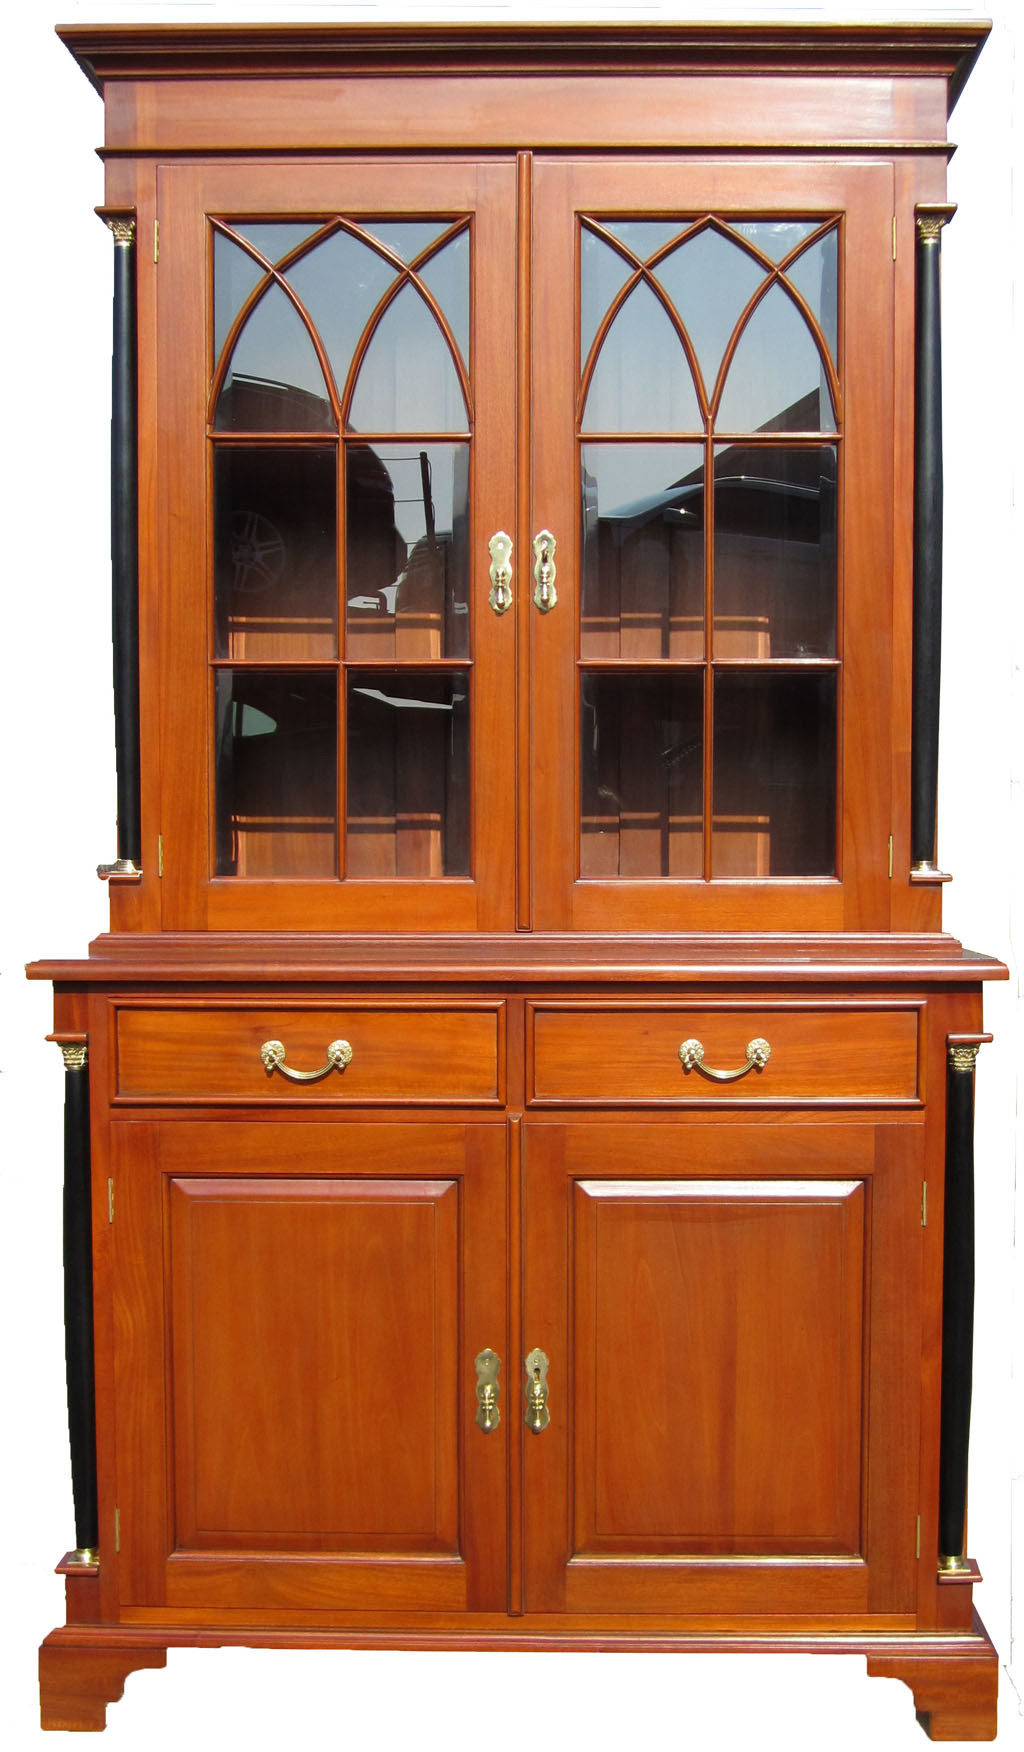 biedermeier buffet vitrine b cherschrank antik kirsche. Black Bedroom Furniture Sets. Home Design Ideas